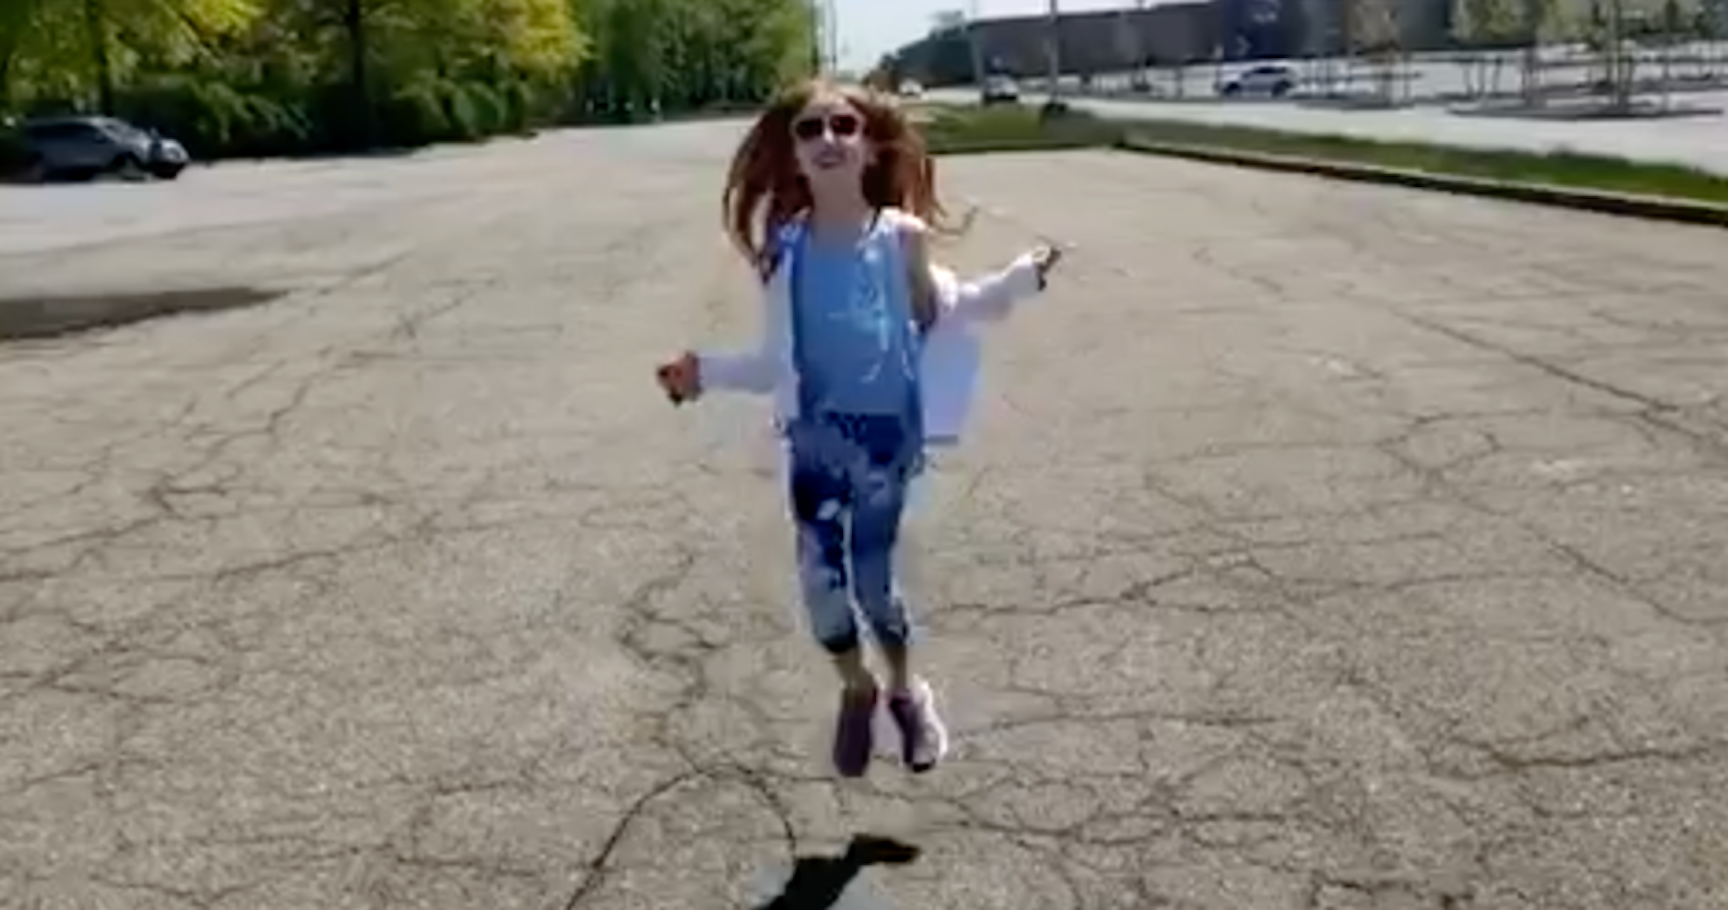 This girl's hair is flying in the air as she jumps